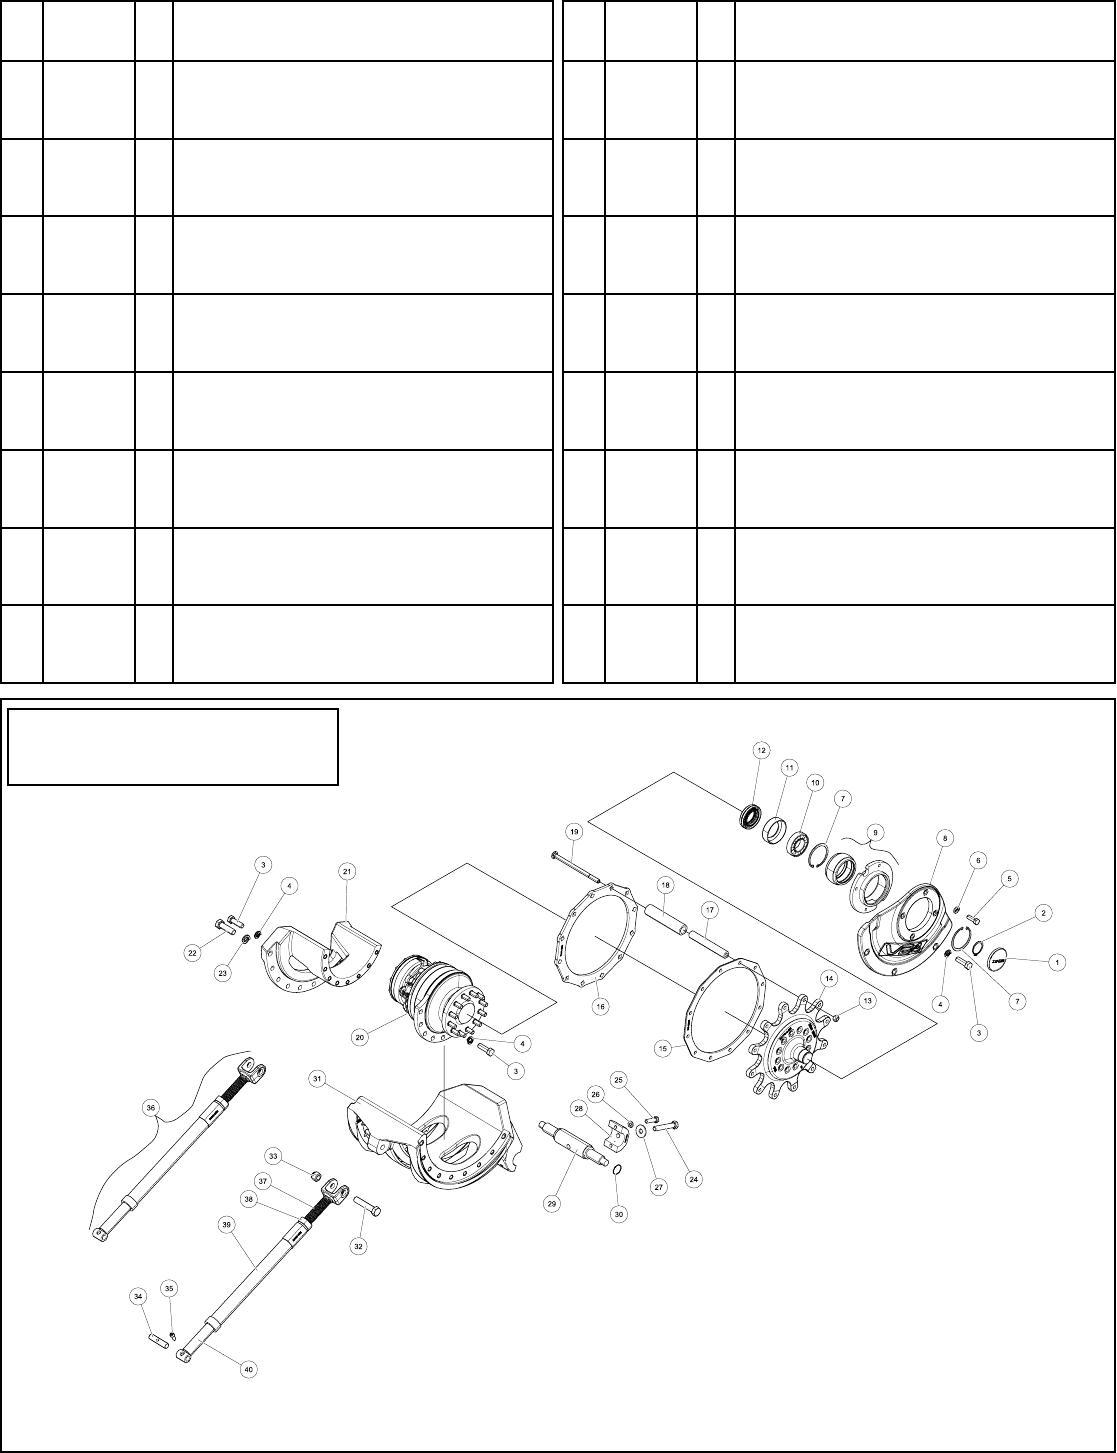 Slander Boat Trailer Wiring Harness Free Download Wiring Diagrams